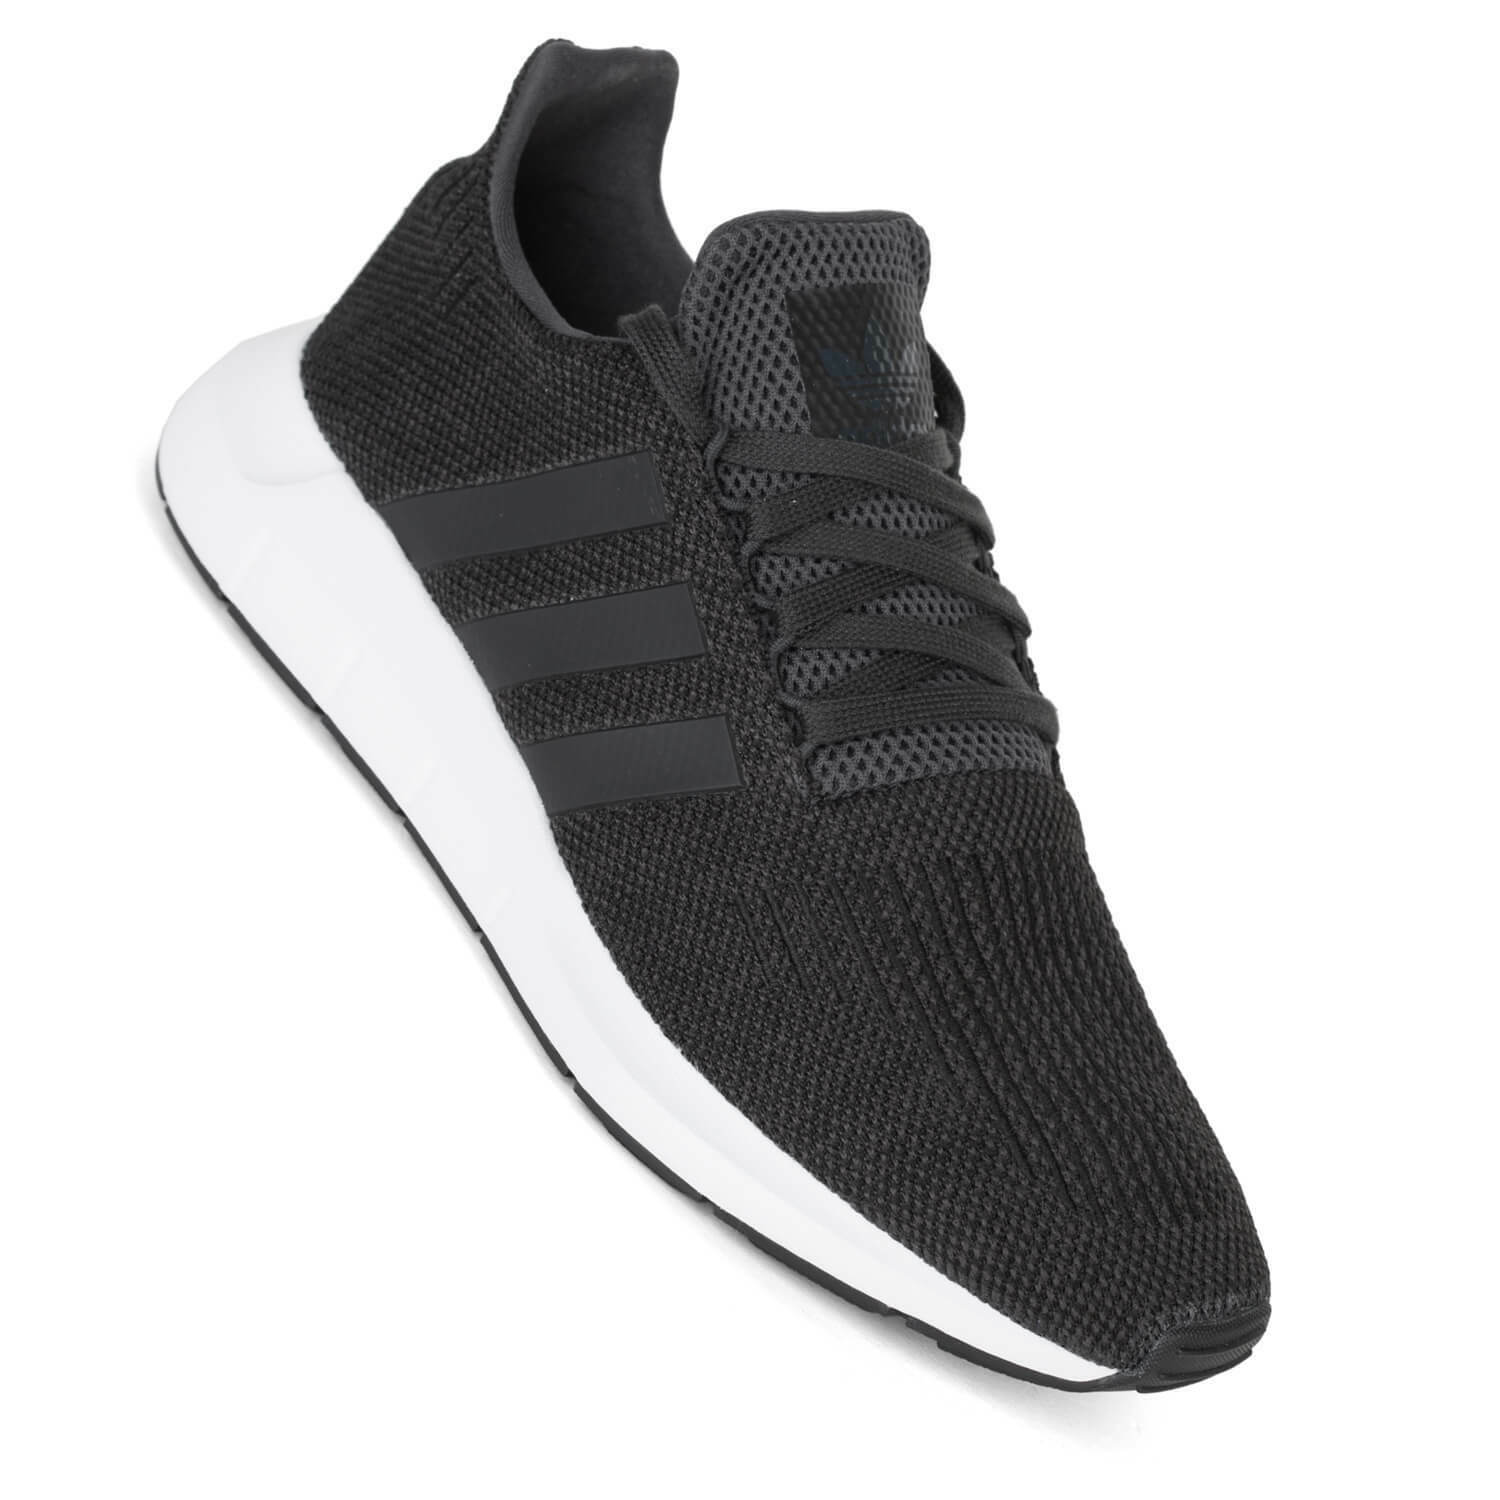 Adidas Swift Run carbon schwarz weiß Herren Sneaker CQ2114